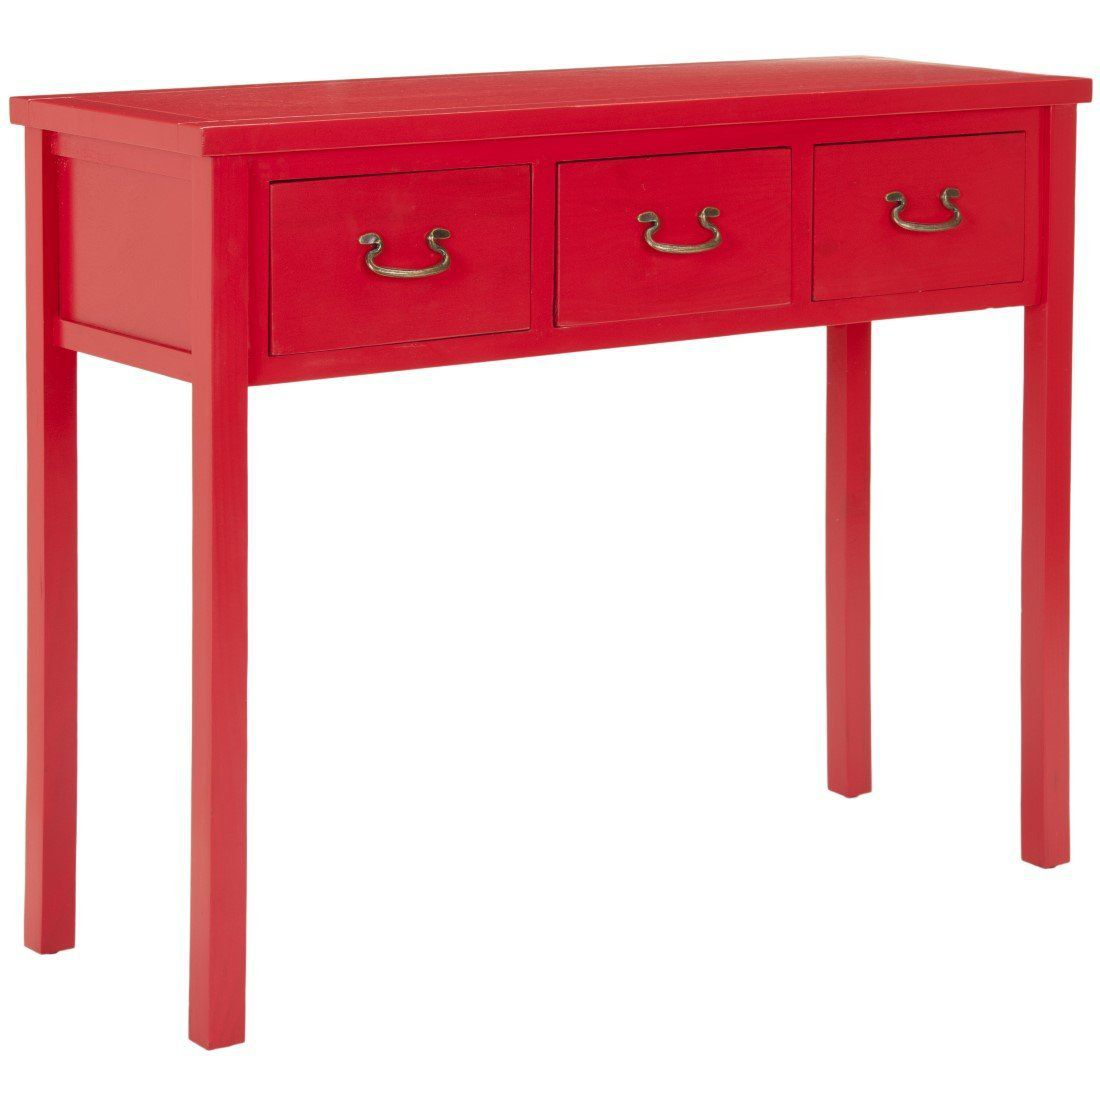 Robinwood 3 Drawer Console Table, American style (Red)